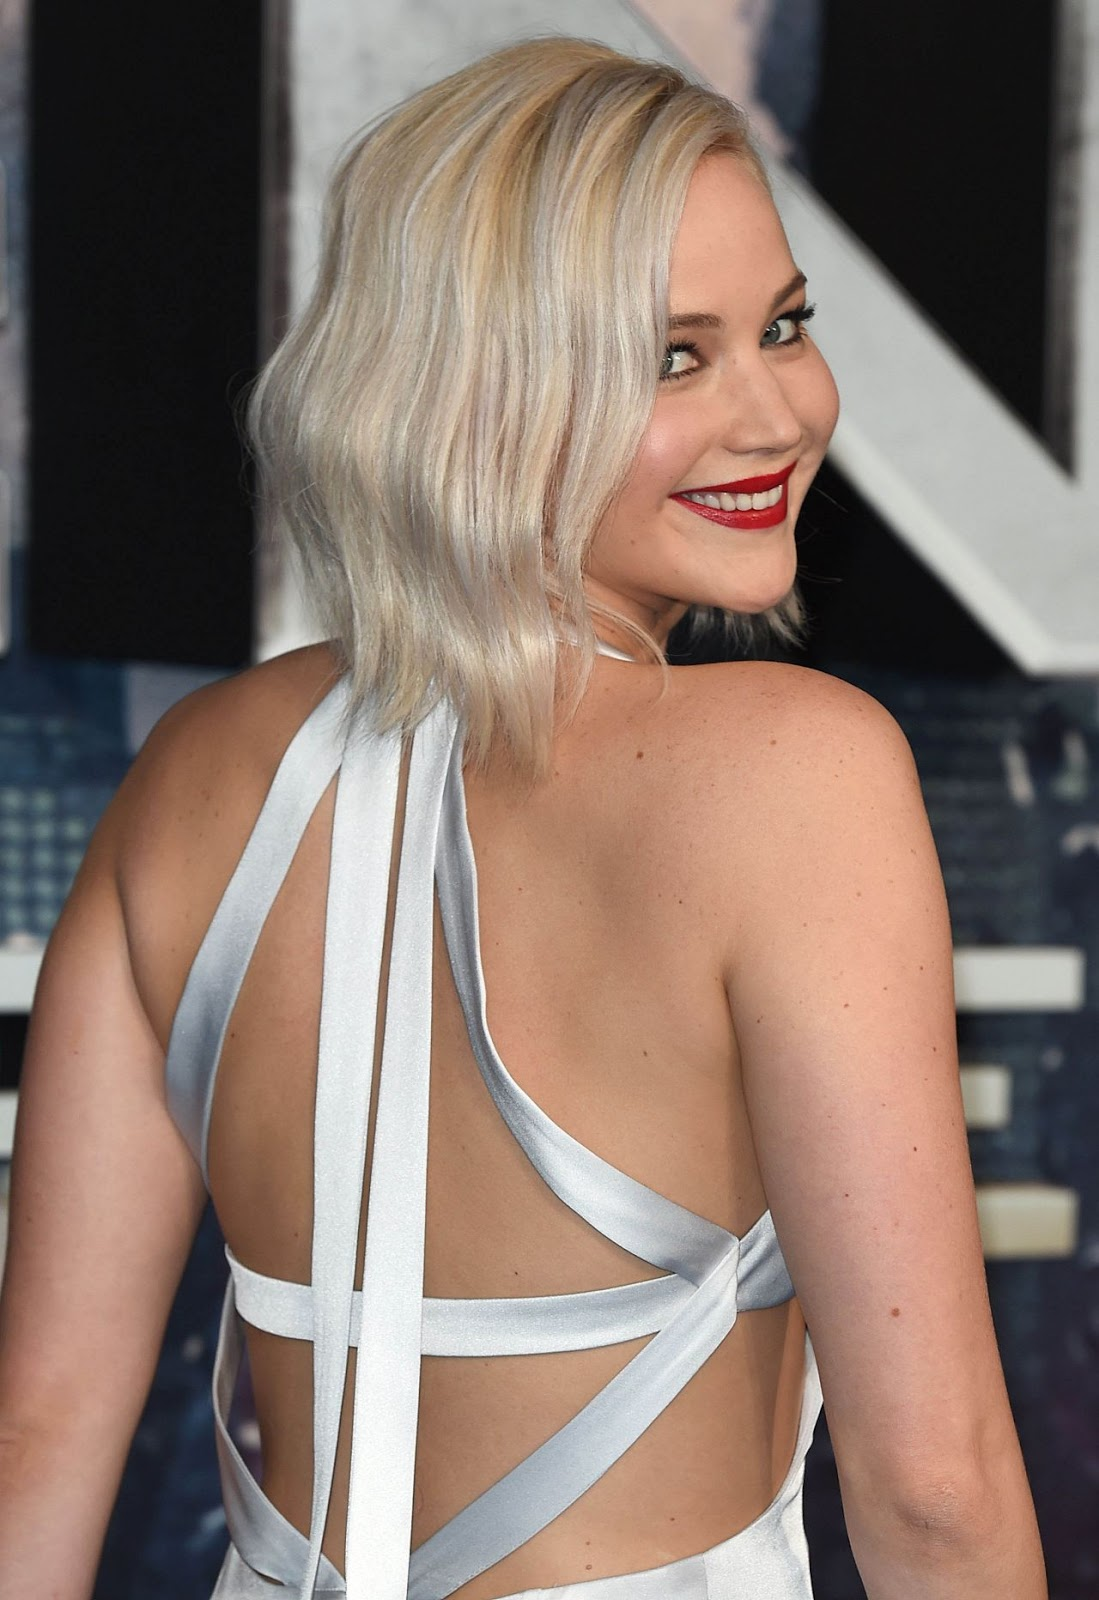 Cleavage Jennifer Lawrence nude (94 photos), Tits, Bikini, Feet, legs 2015